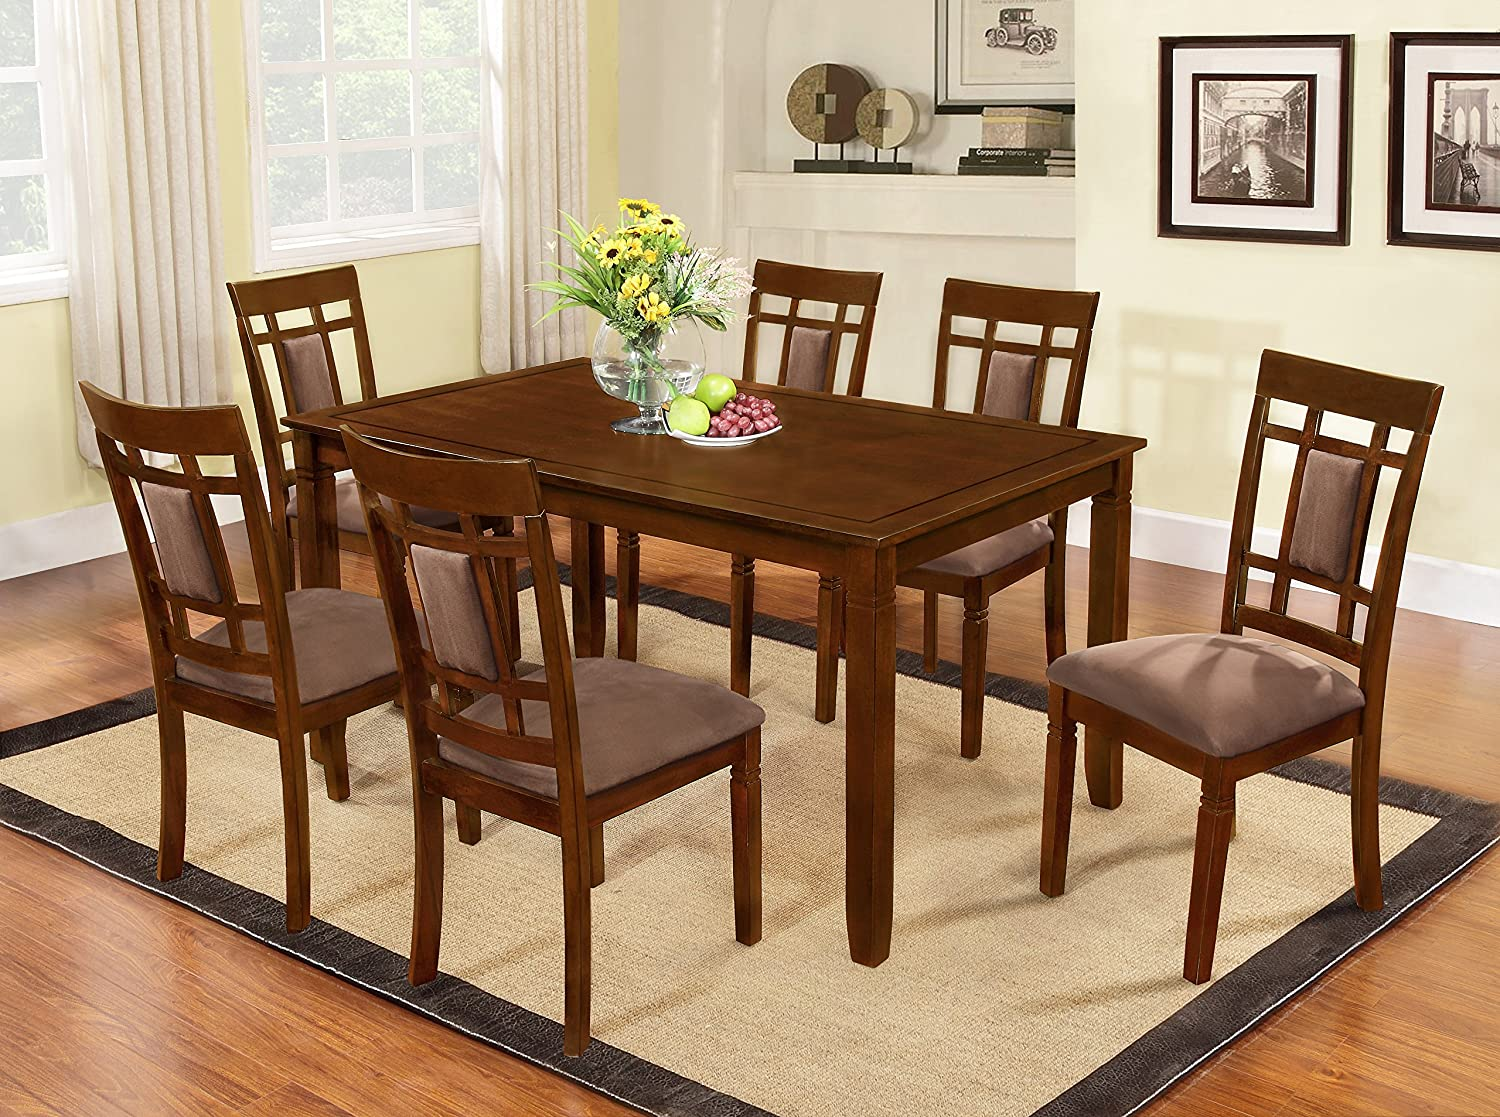 Amazon com   The Room Style 7 piece Cherry Finish Solid Wood Dining Table  Set   Table   Chair Sets. Amazon com   The Room Style 7 piece Cherry Finish Solid Wood